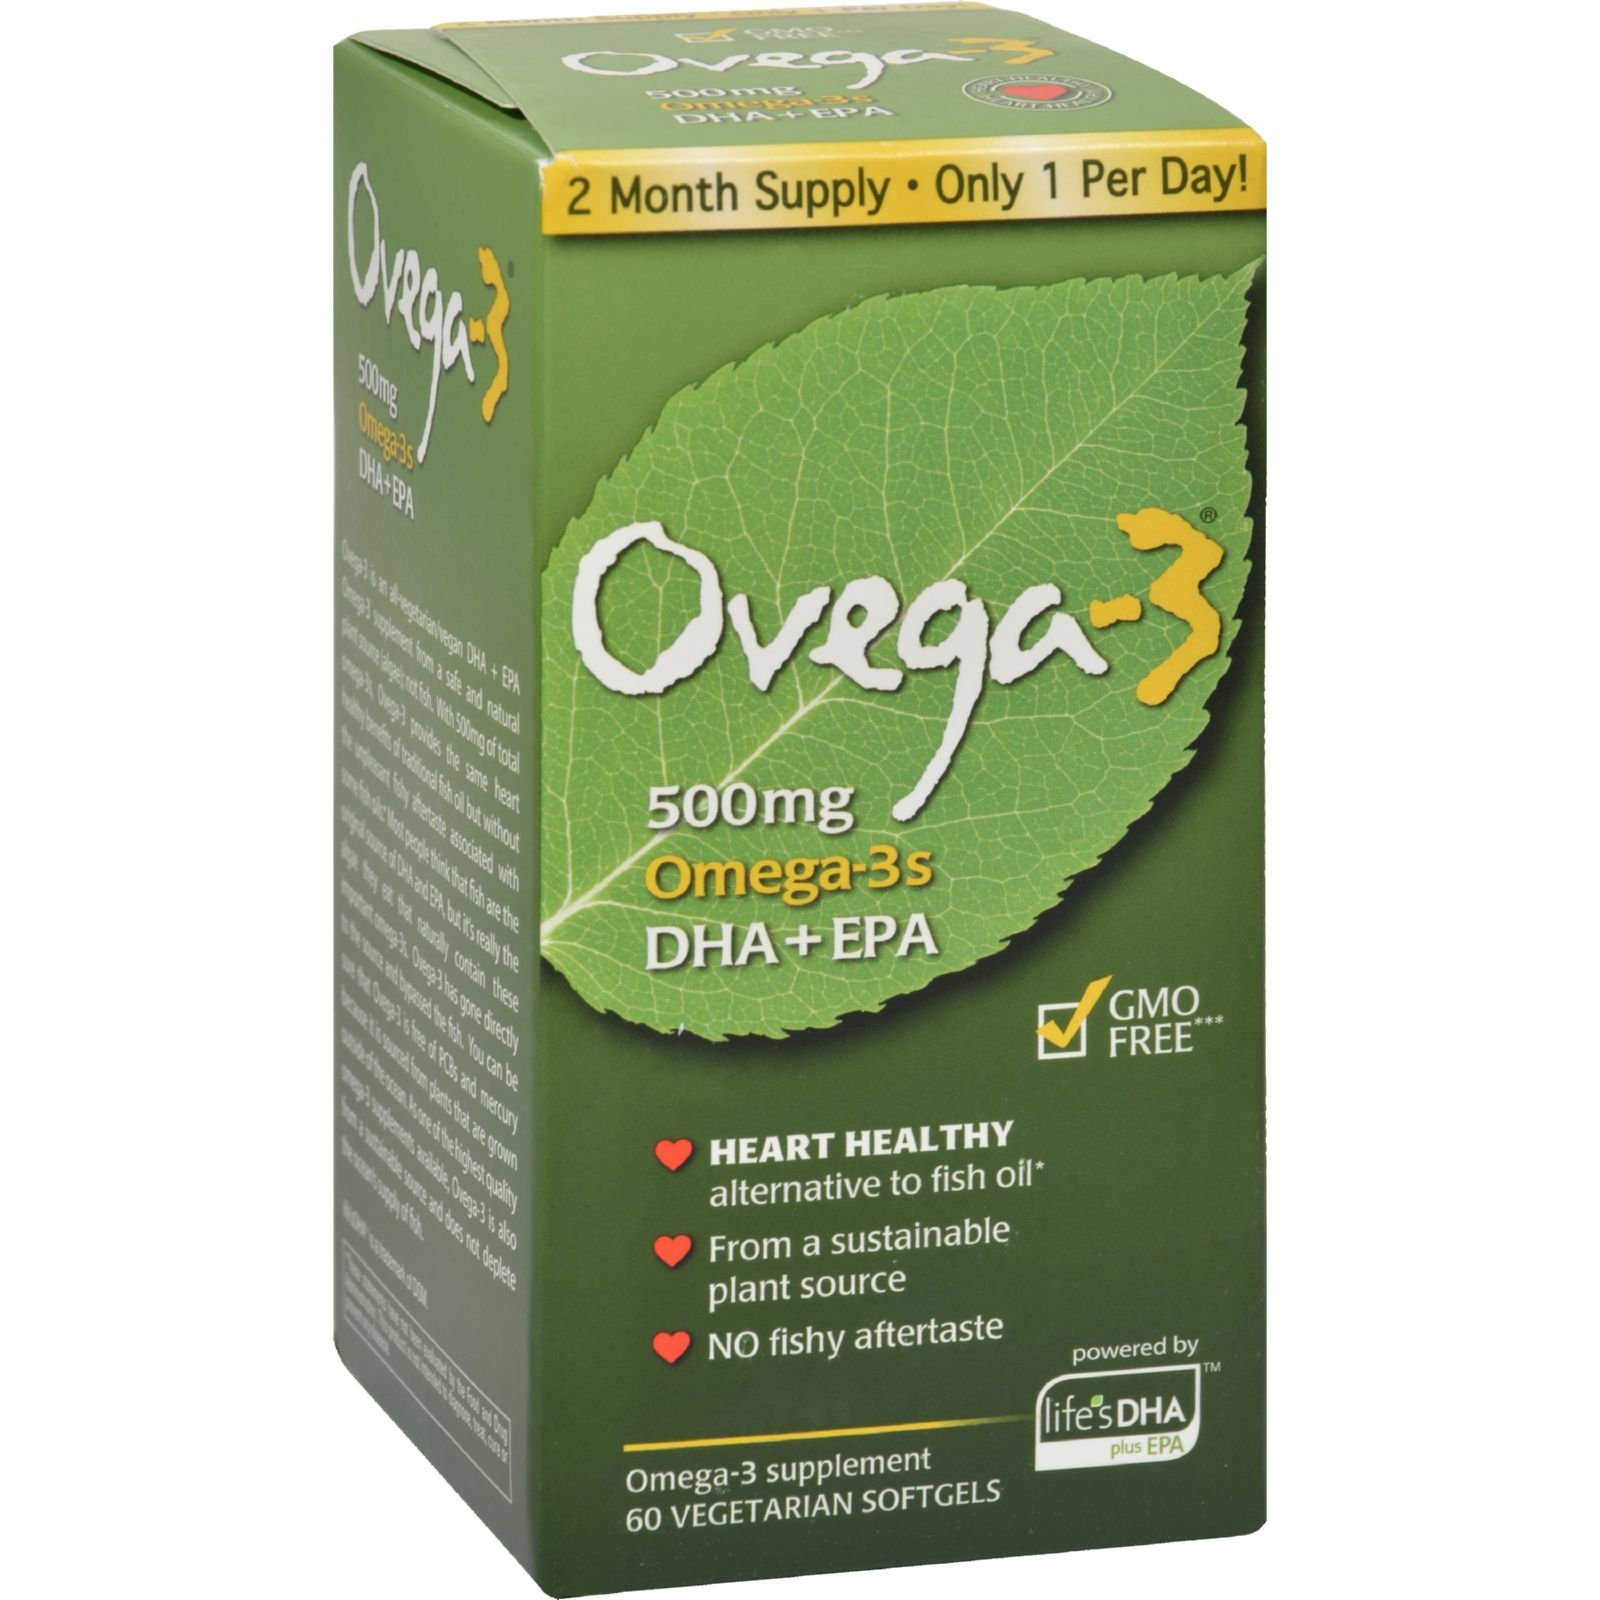 Amerifit Nutrition Ovega-3 - 500 mg - Non GMO - 60 Vegetarian Softgels (Pack of 2)